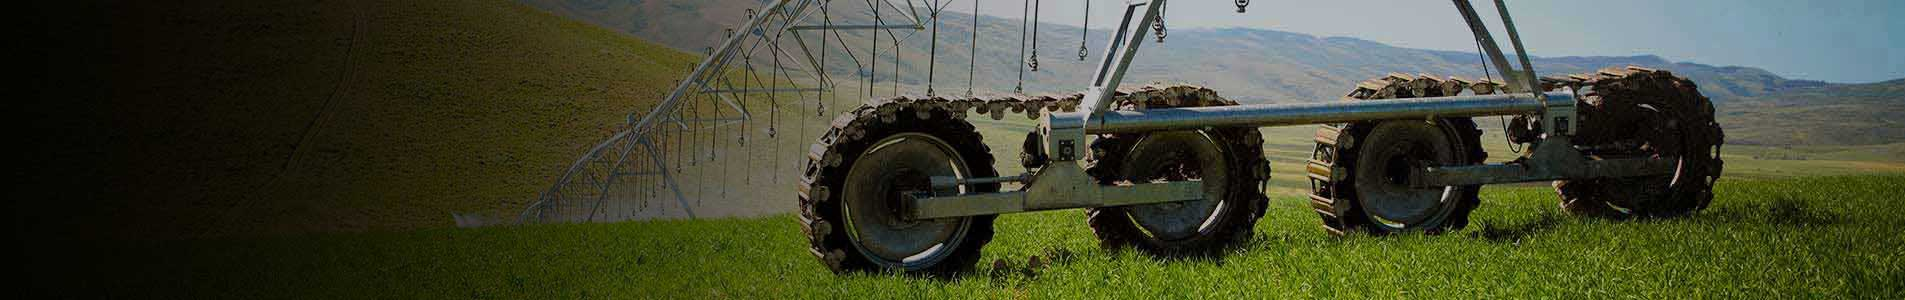 valley articulating track drive - irrigation tires